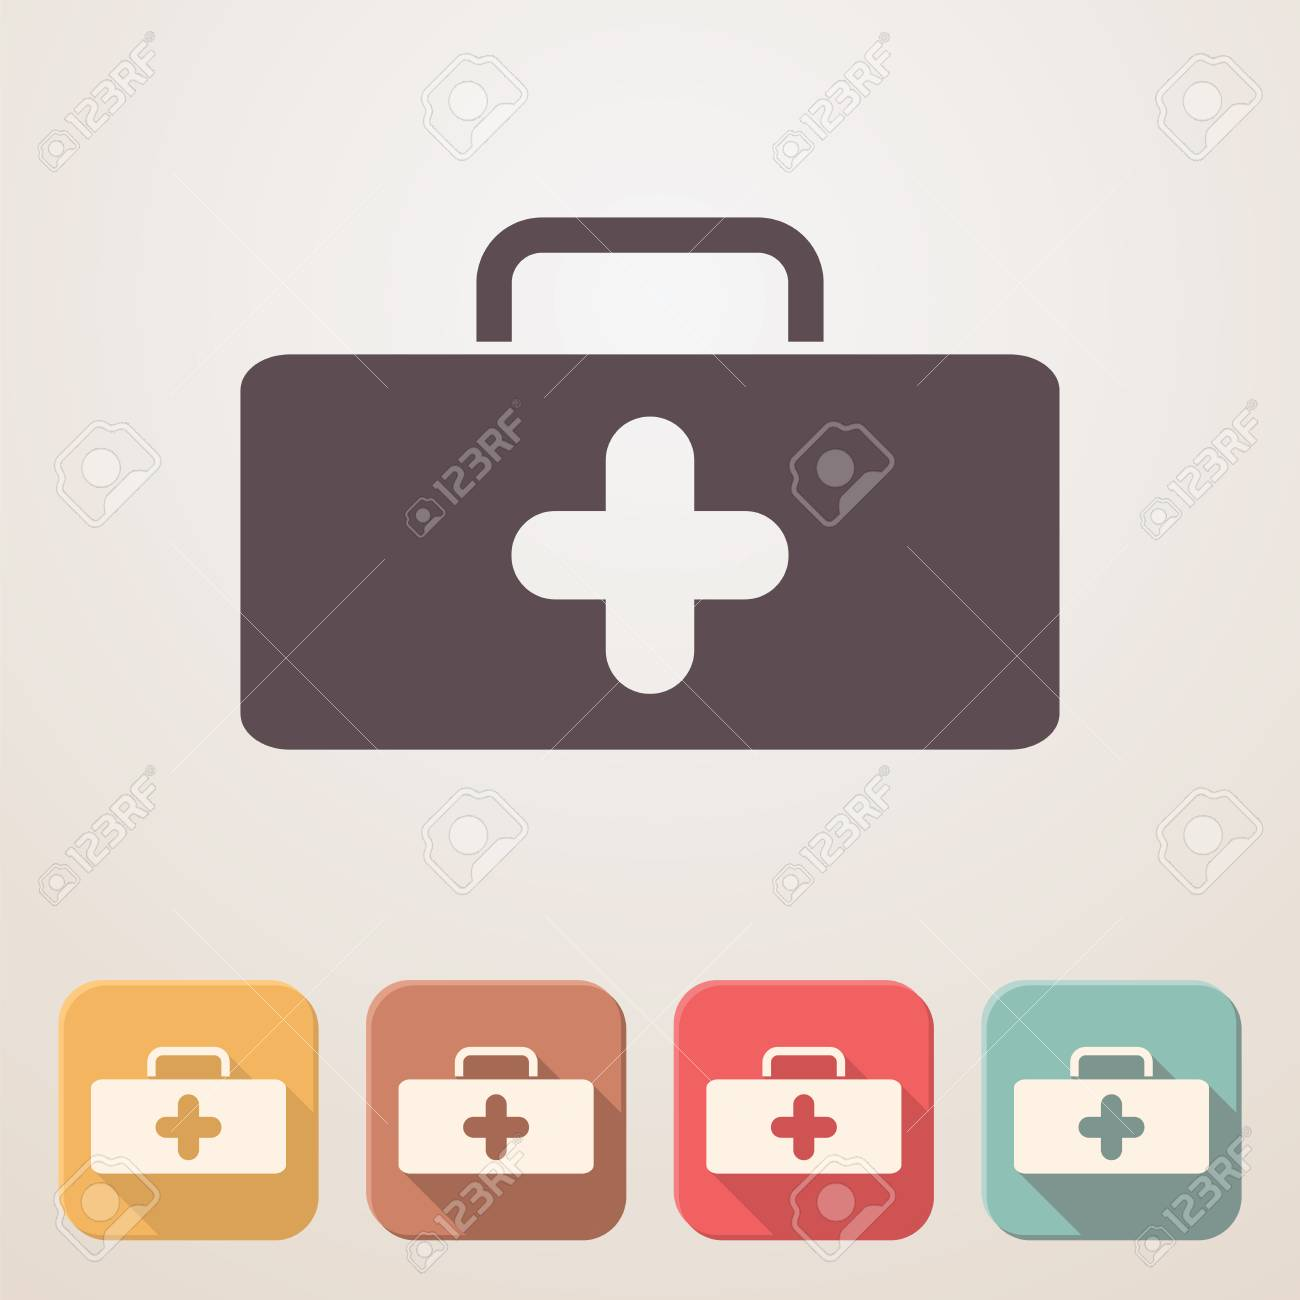 medical bag flat icon set in color boxes with shadow royalty free